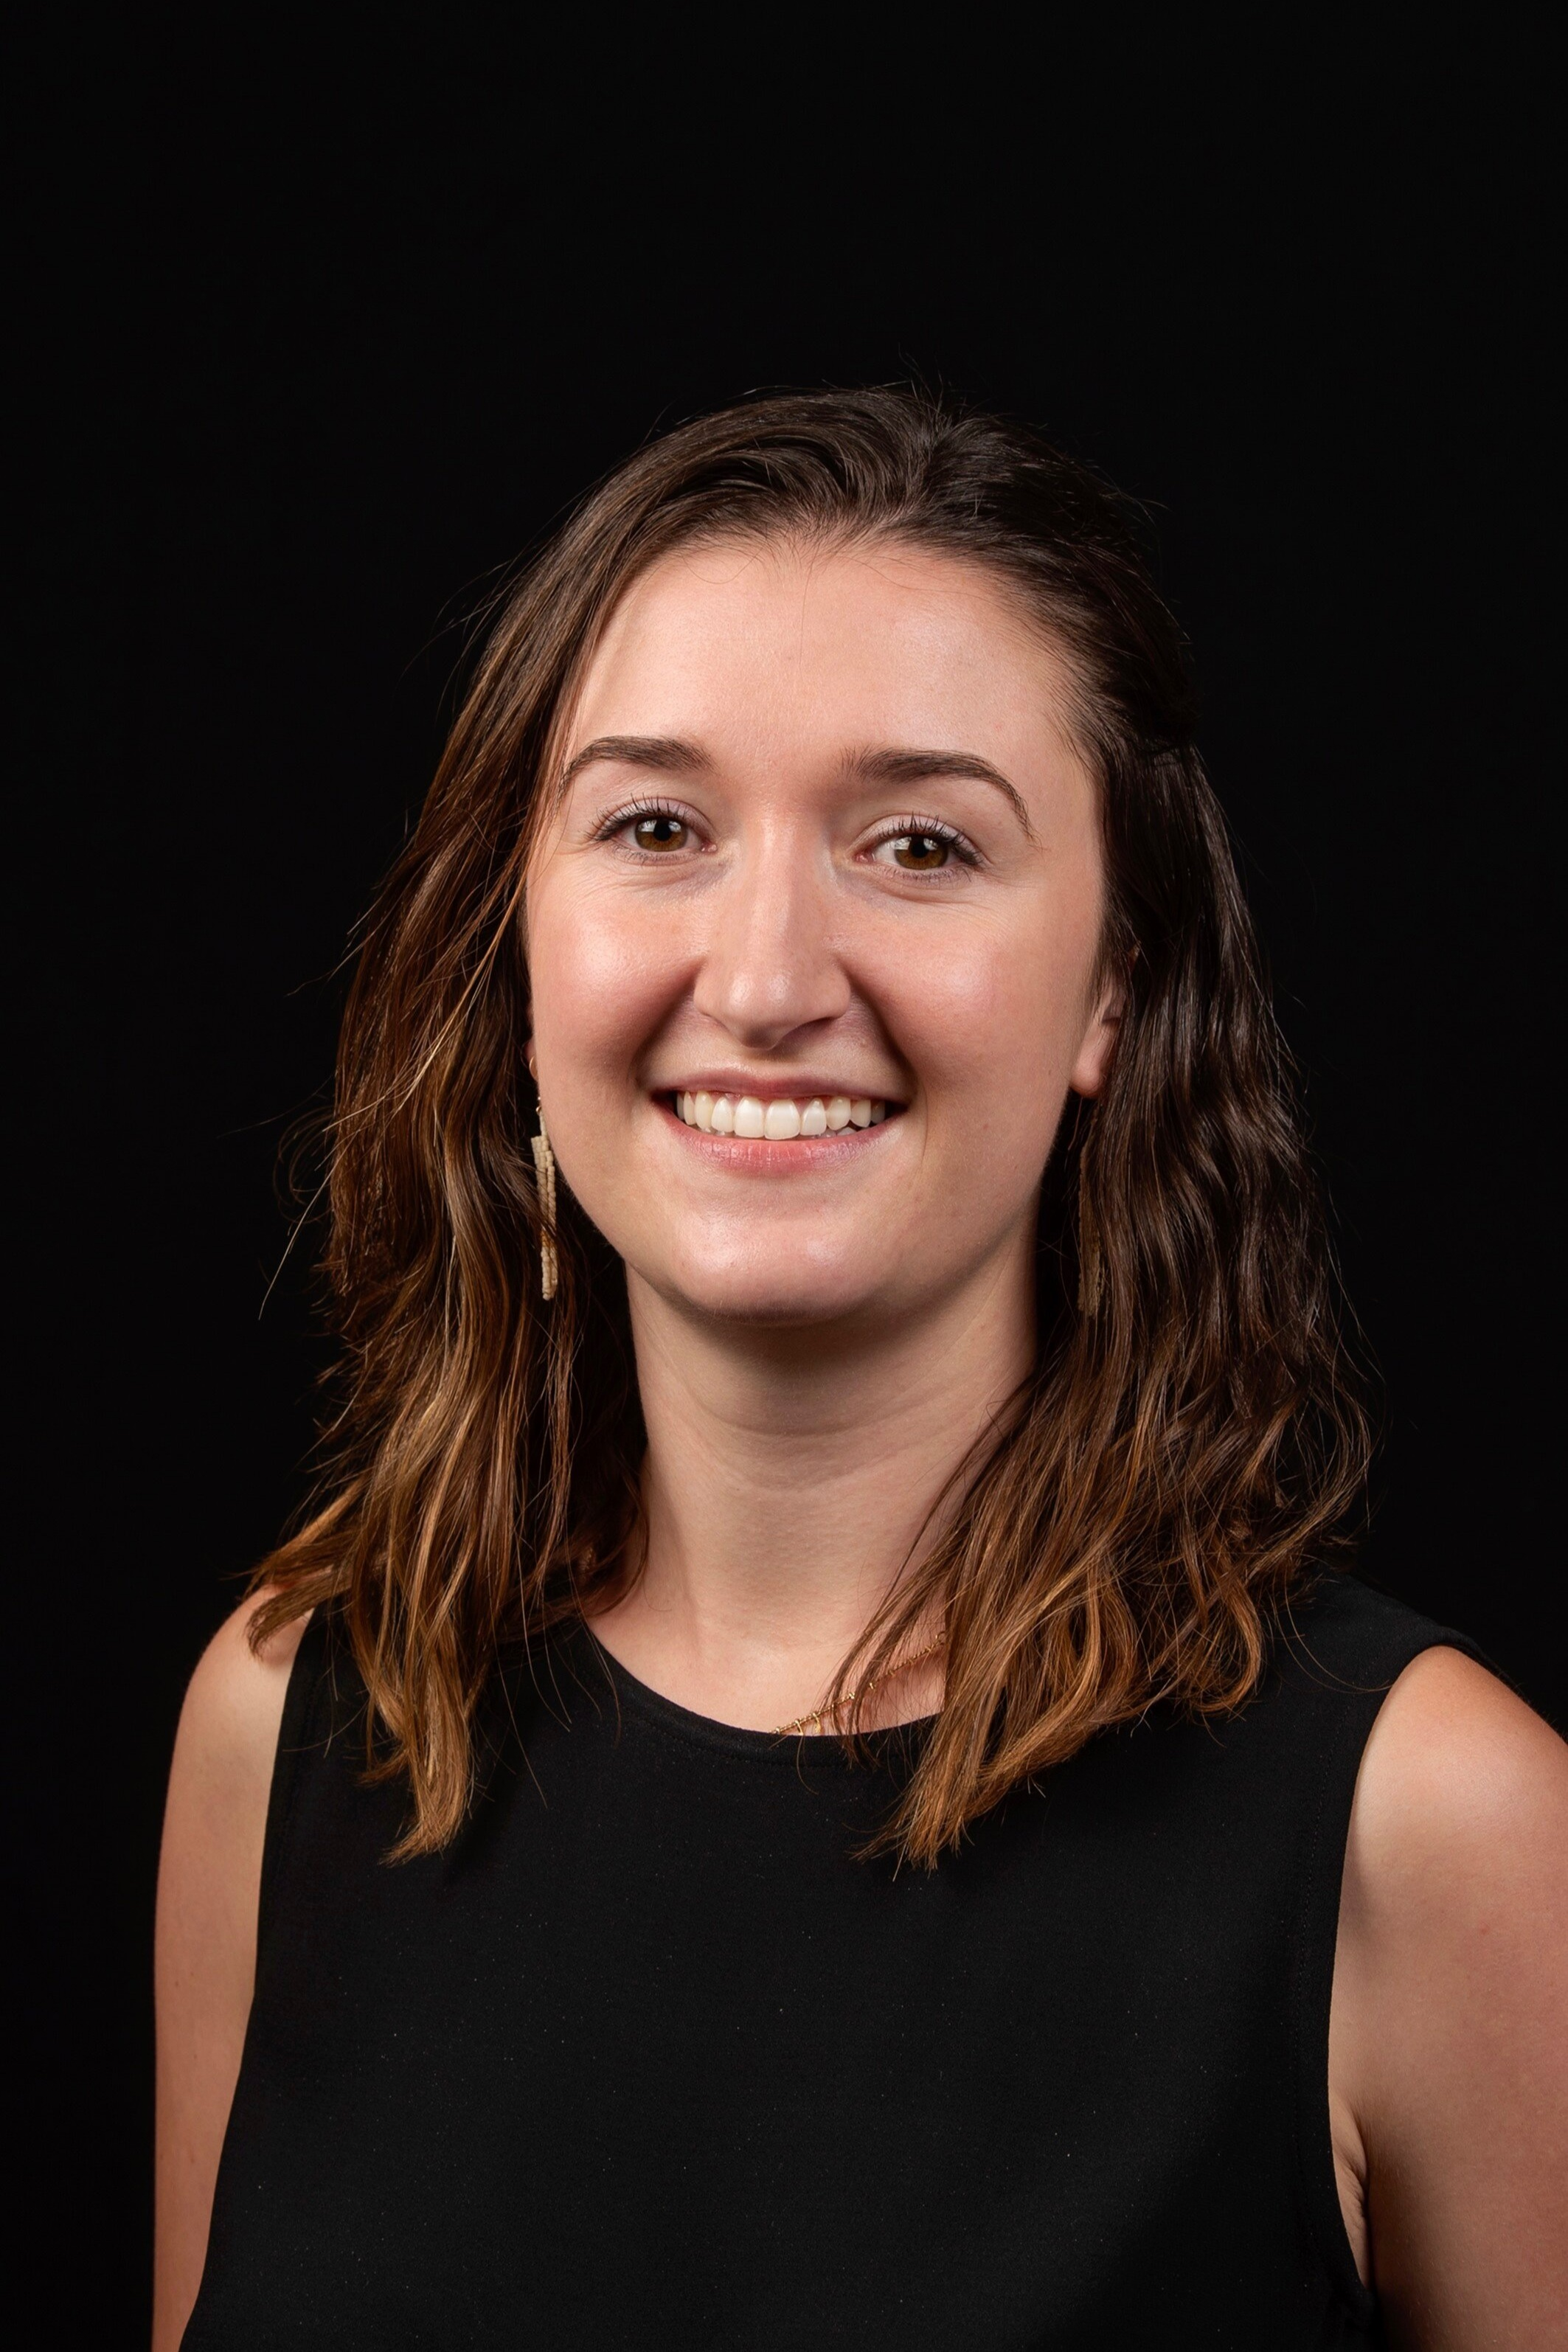 Emily Canner - Strategic Relations & Communications Specialist